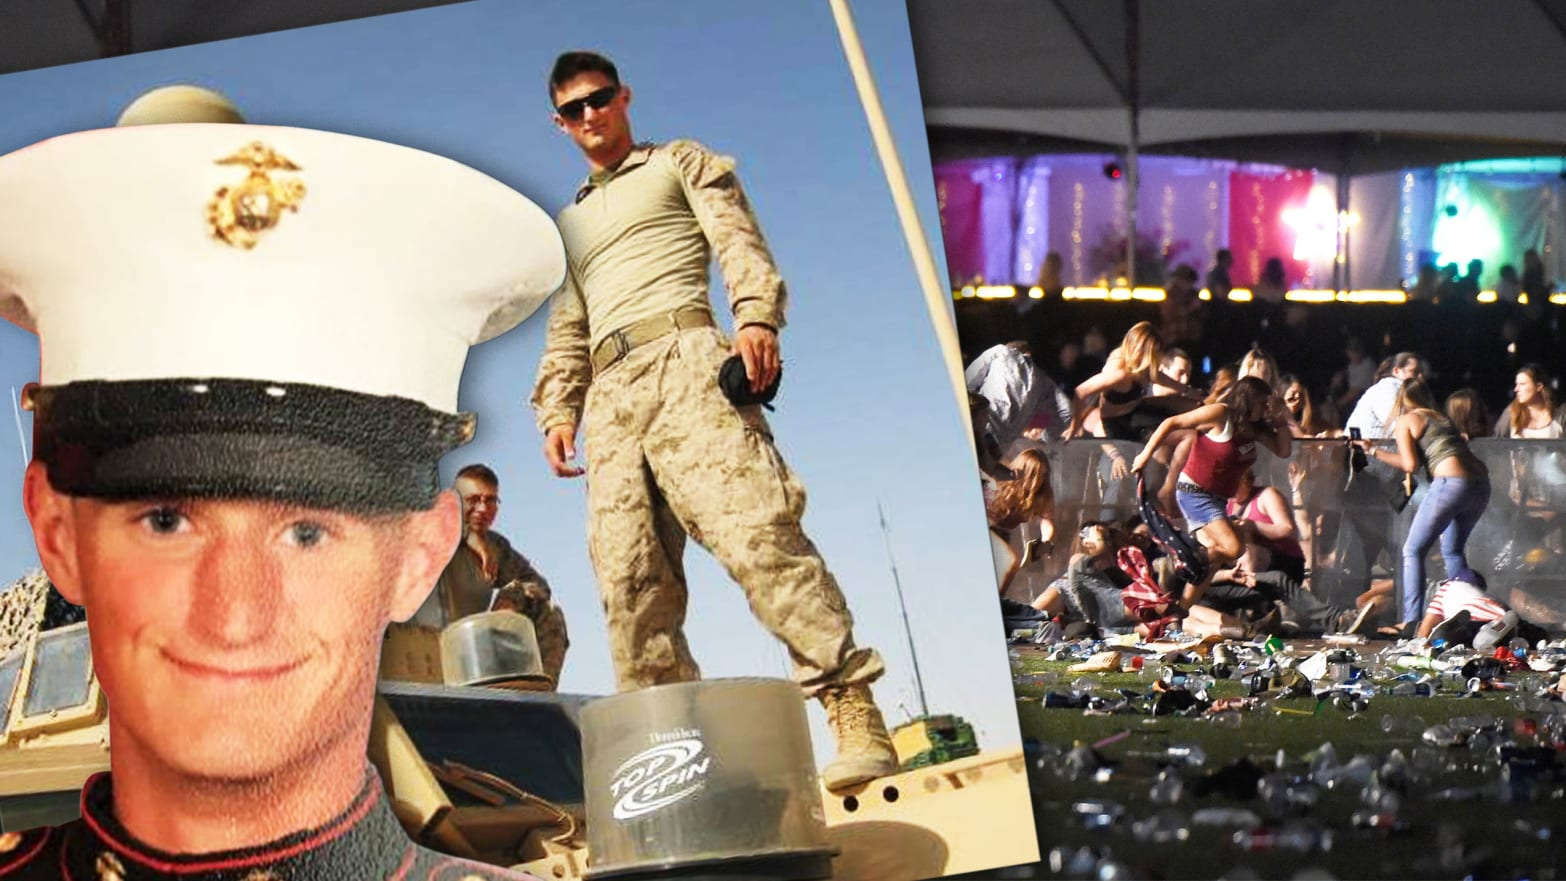 Marine Veteran Heard Shots, Grabbed Pickup Truck, and Took Vegas Victims to Safety